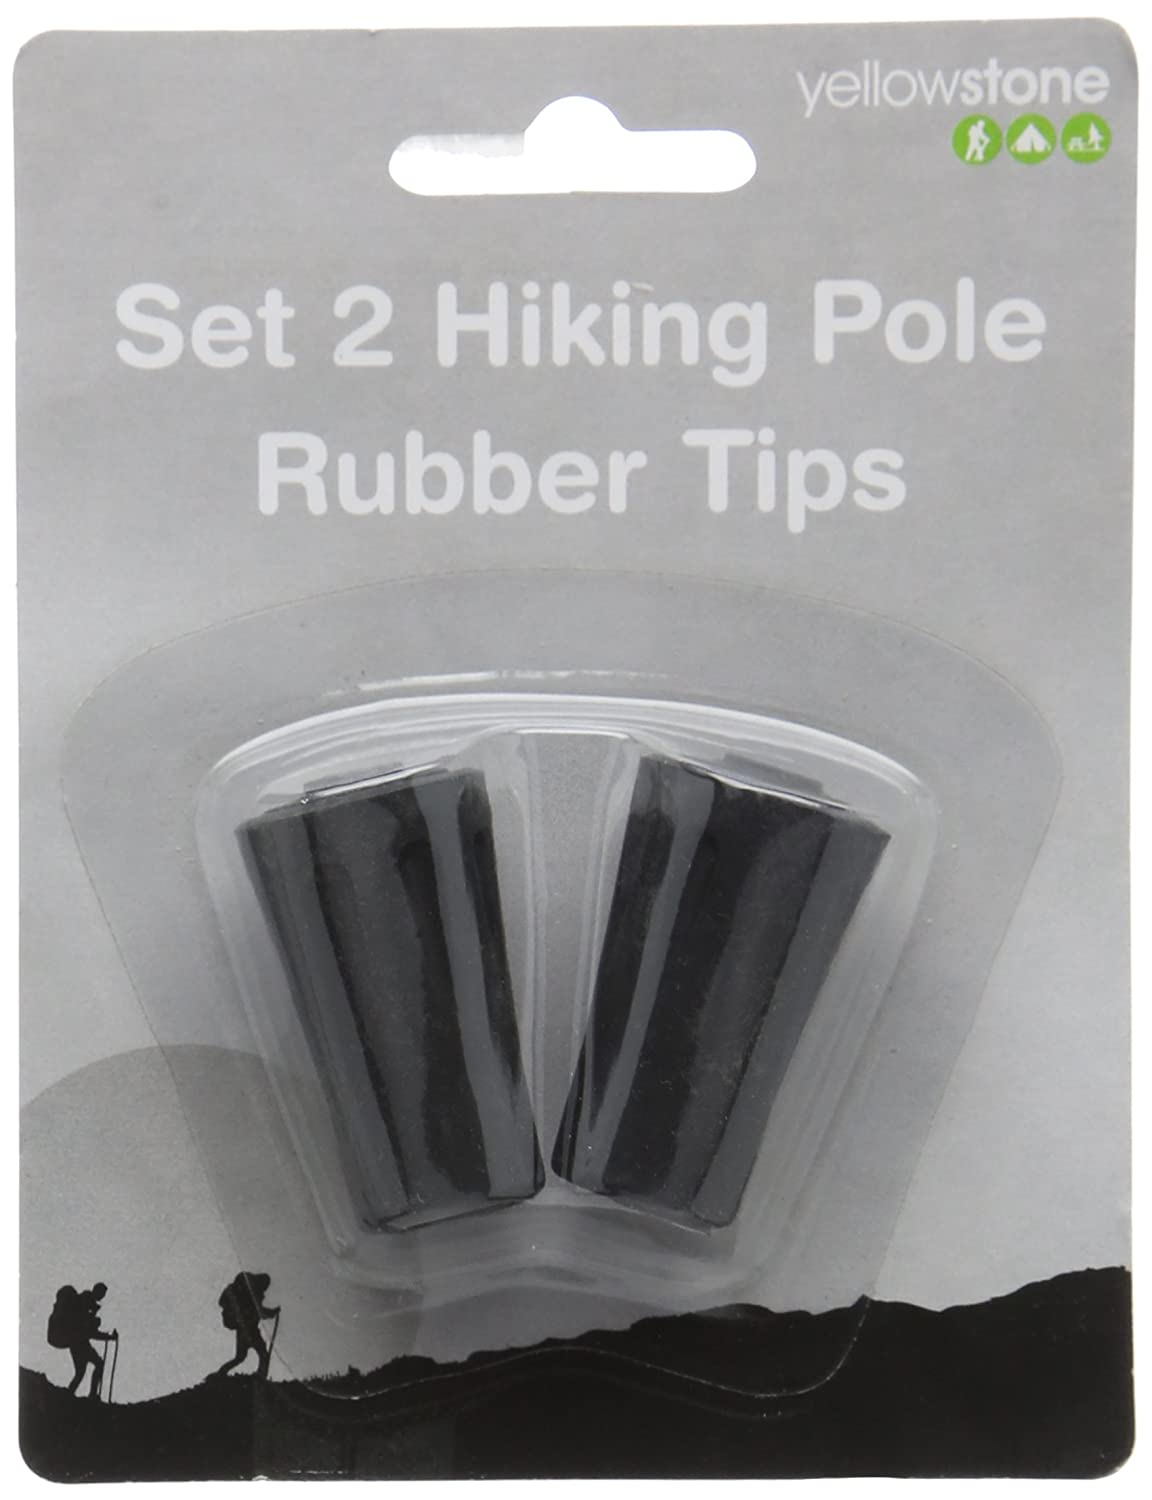 Yellowstone Hiking Pole Rubber Tip (Pack of 2) - Multi-Colour B00MRAW8E2